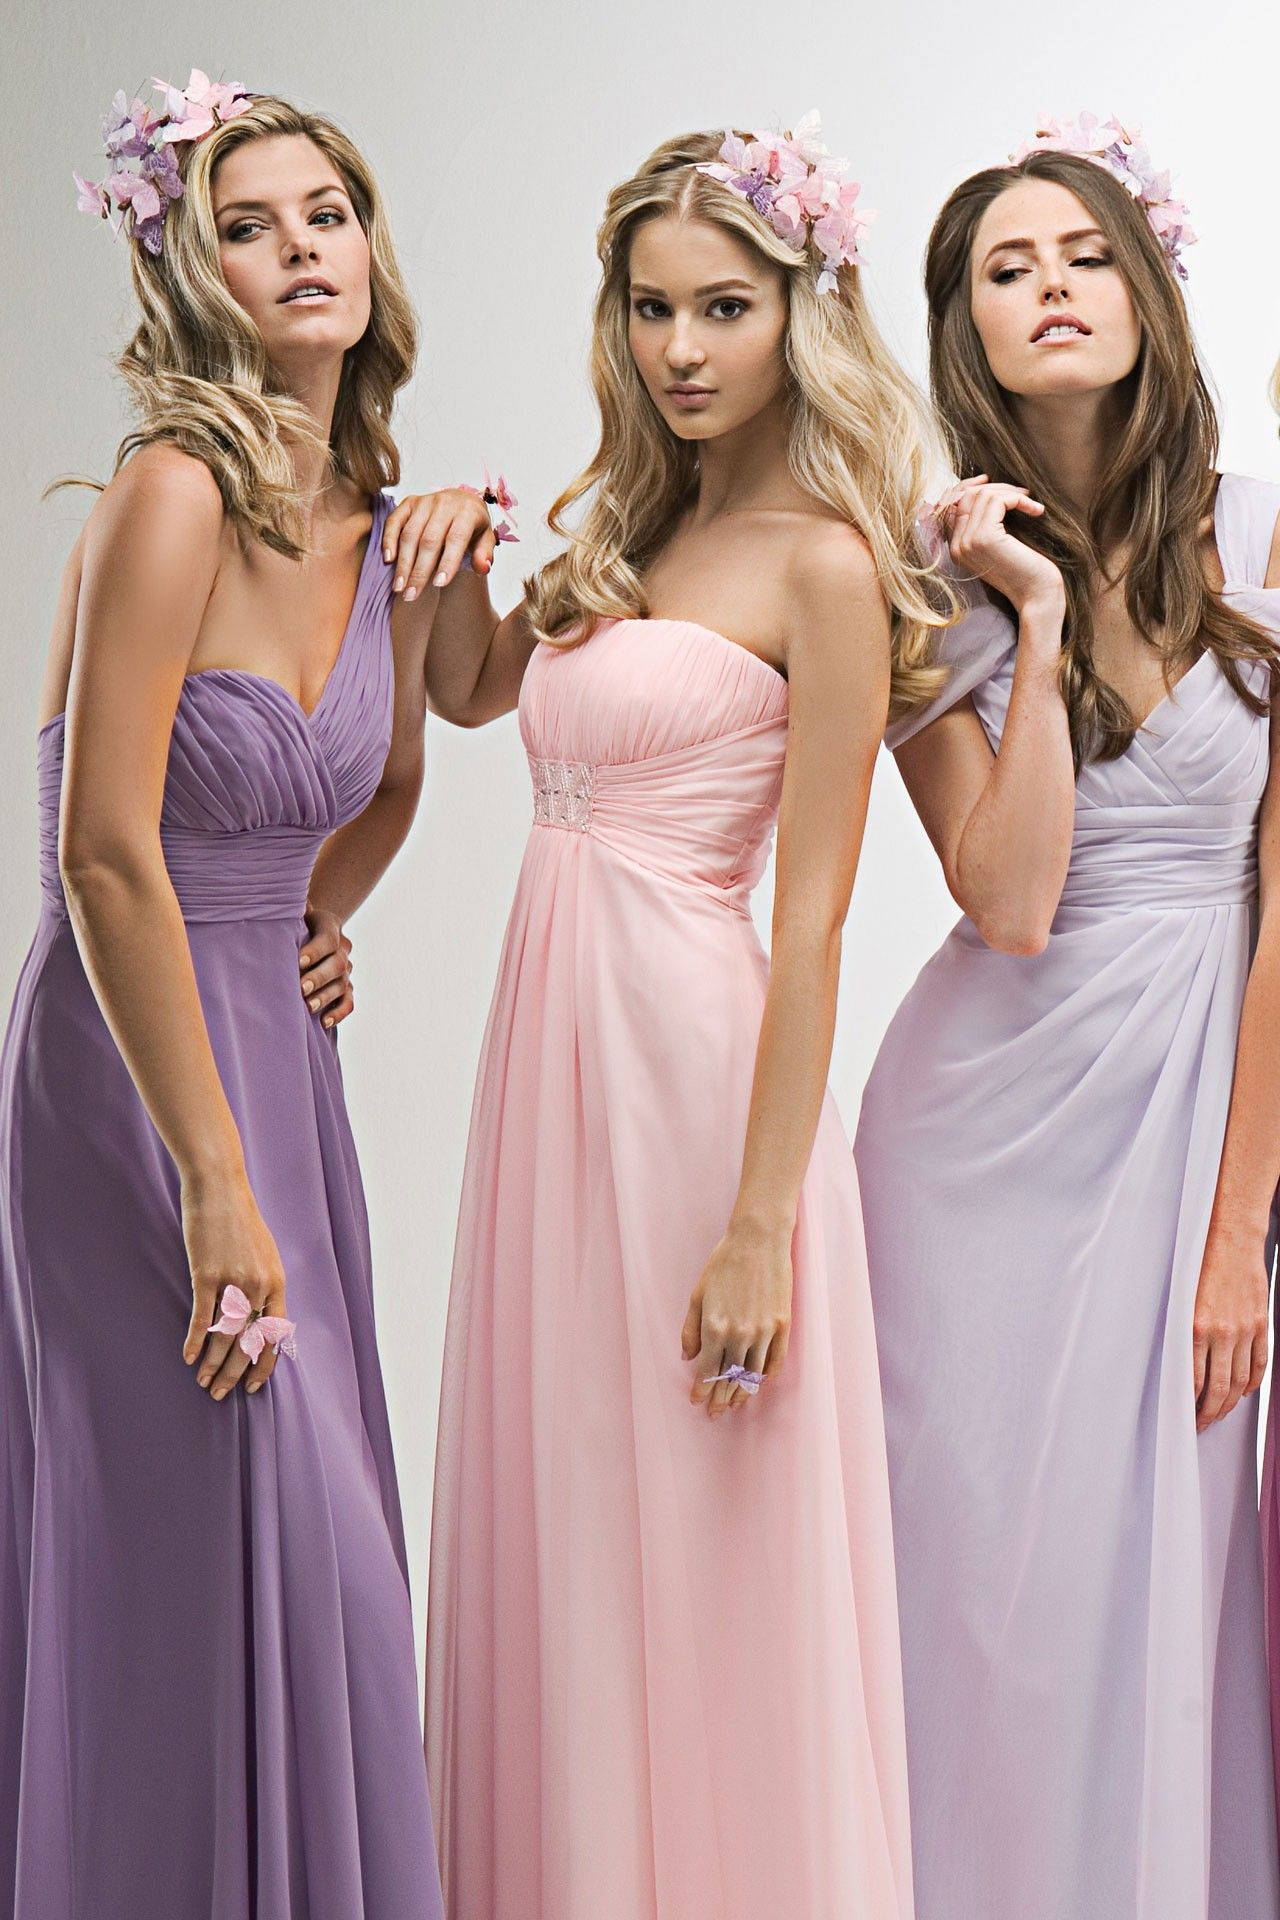 Bridesmaid Dresses Latest Styles & Ideas (BridesMagazine.co.uk ...